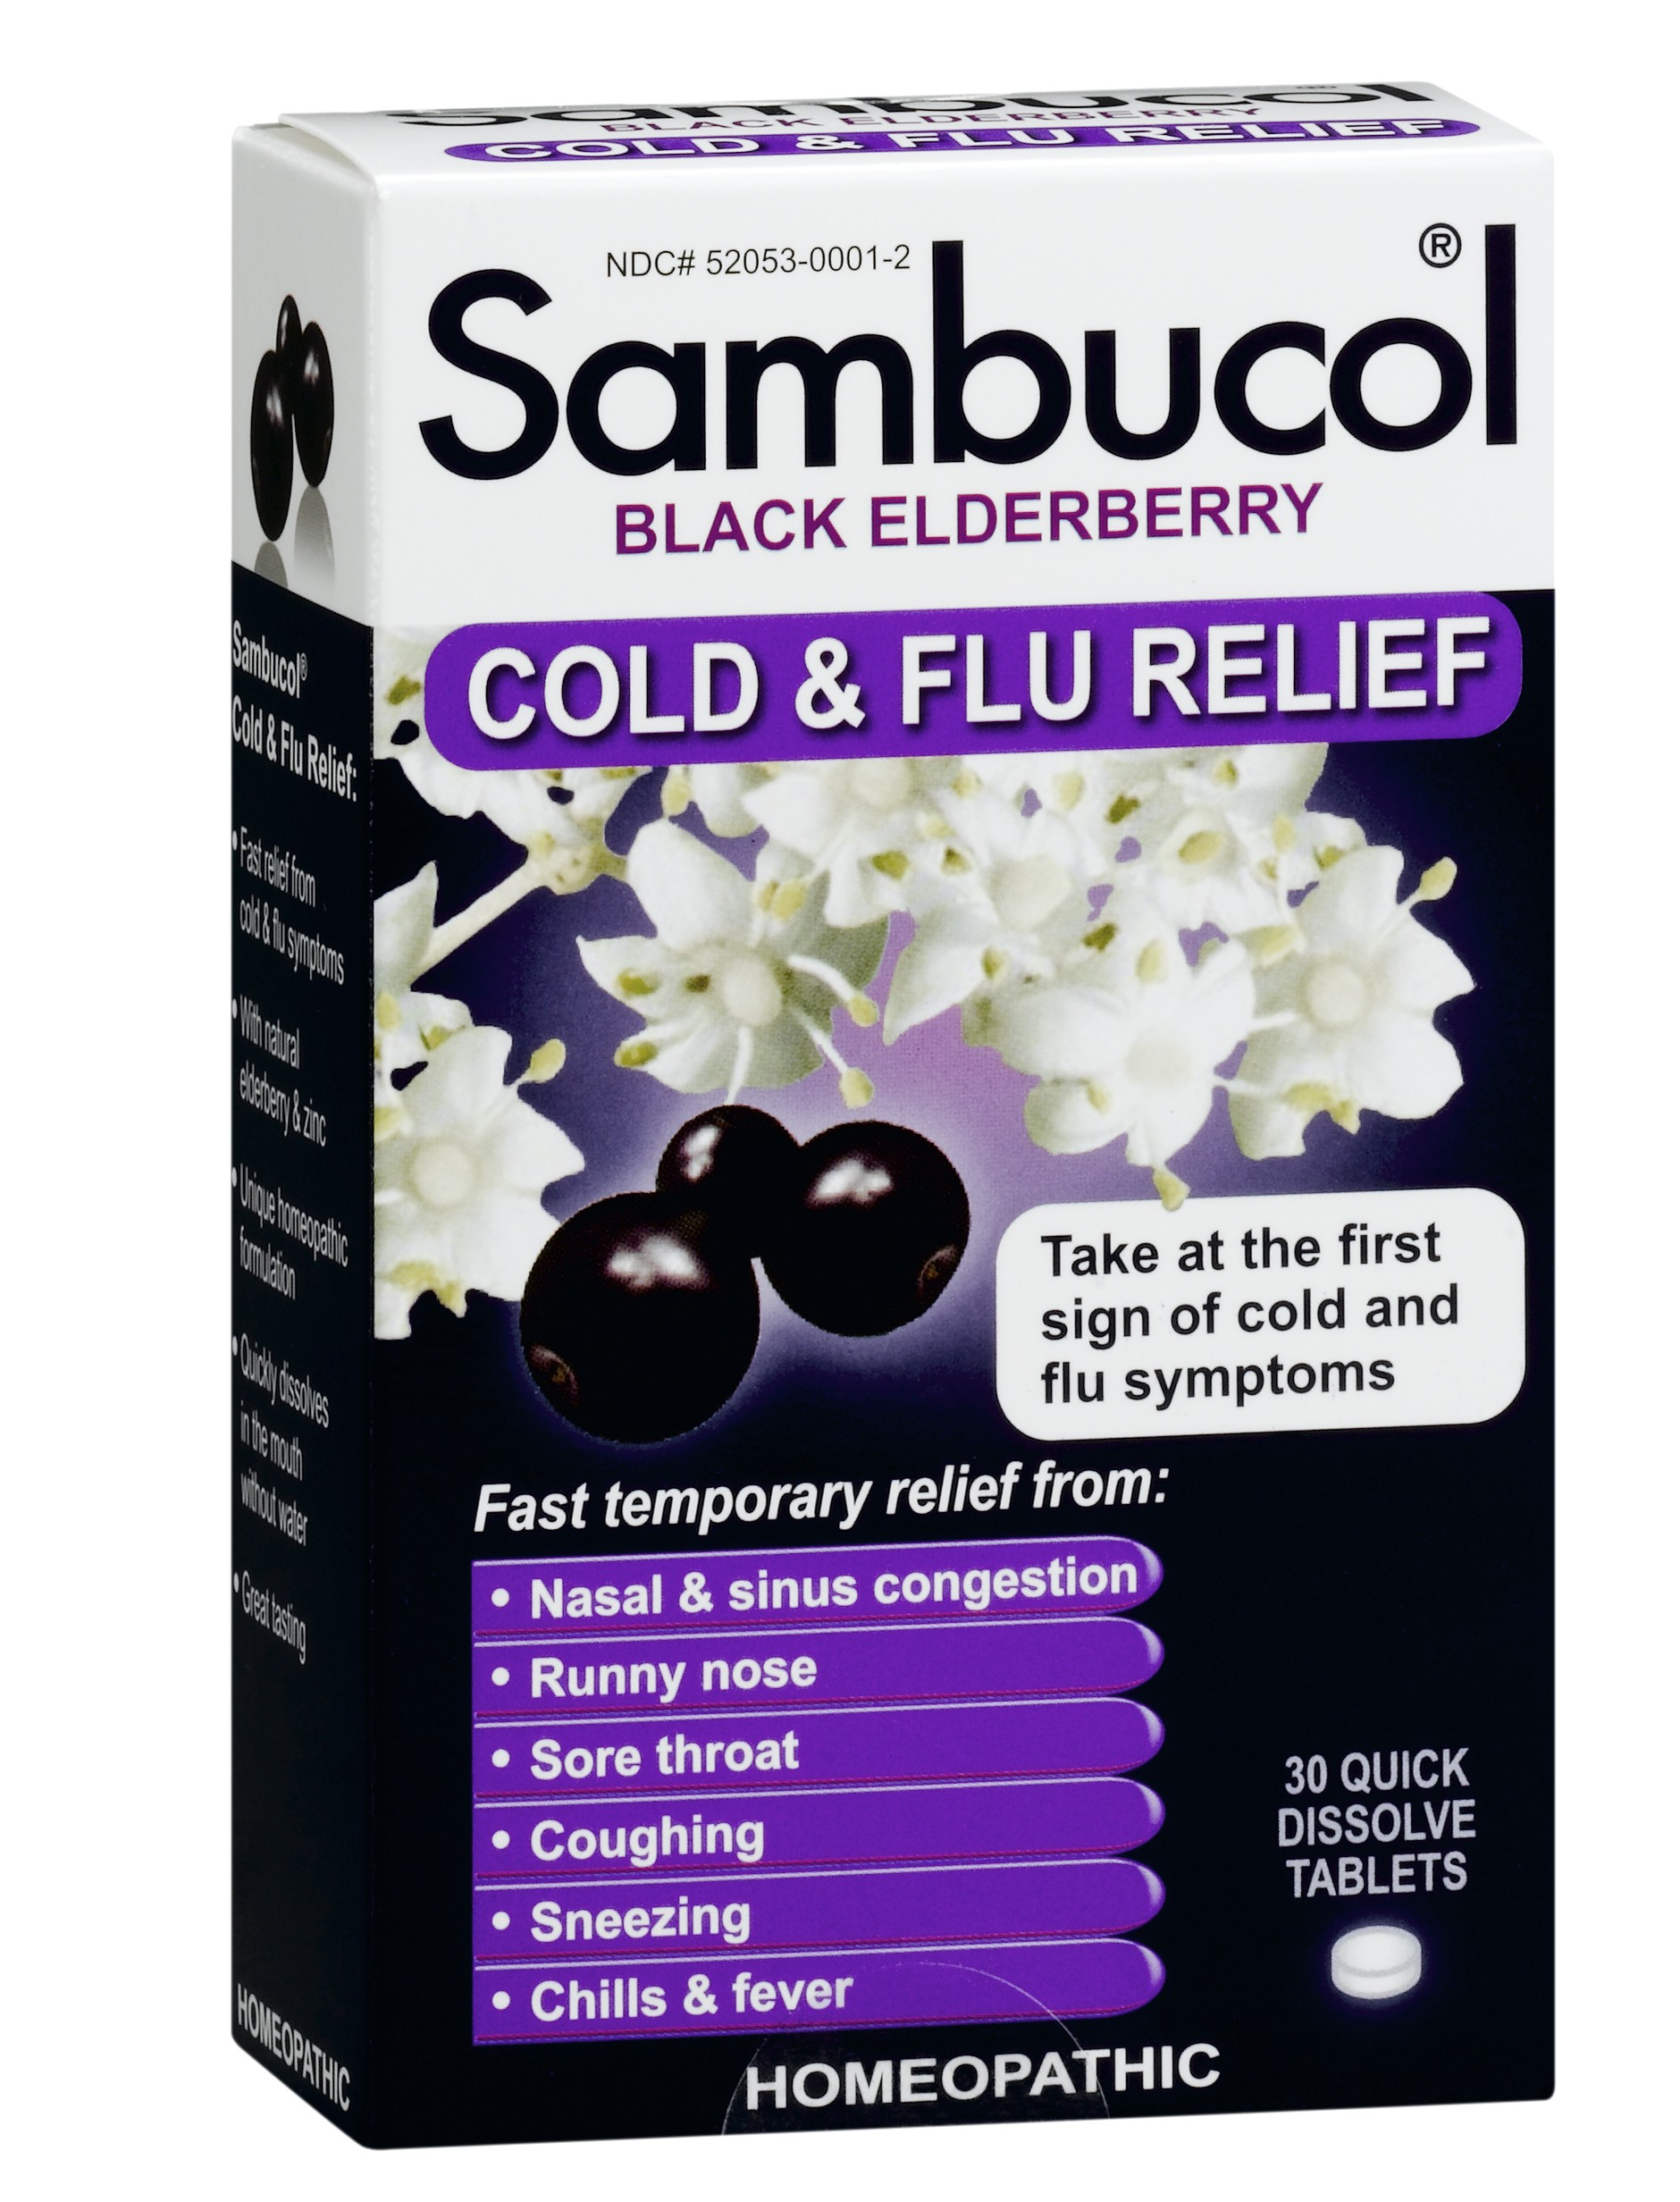 For fast relief from congestion runny nose, sore throat and coughing and sneezing..